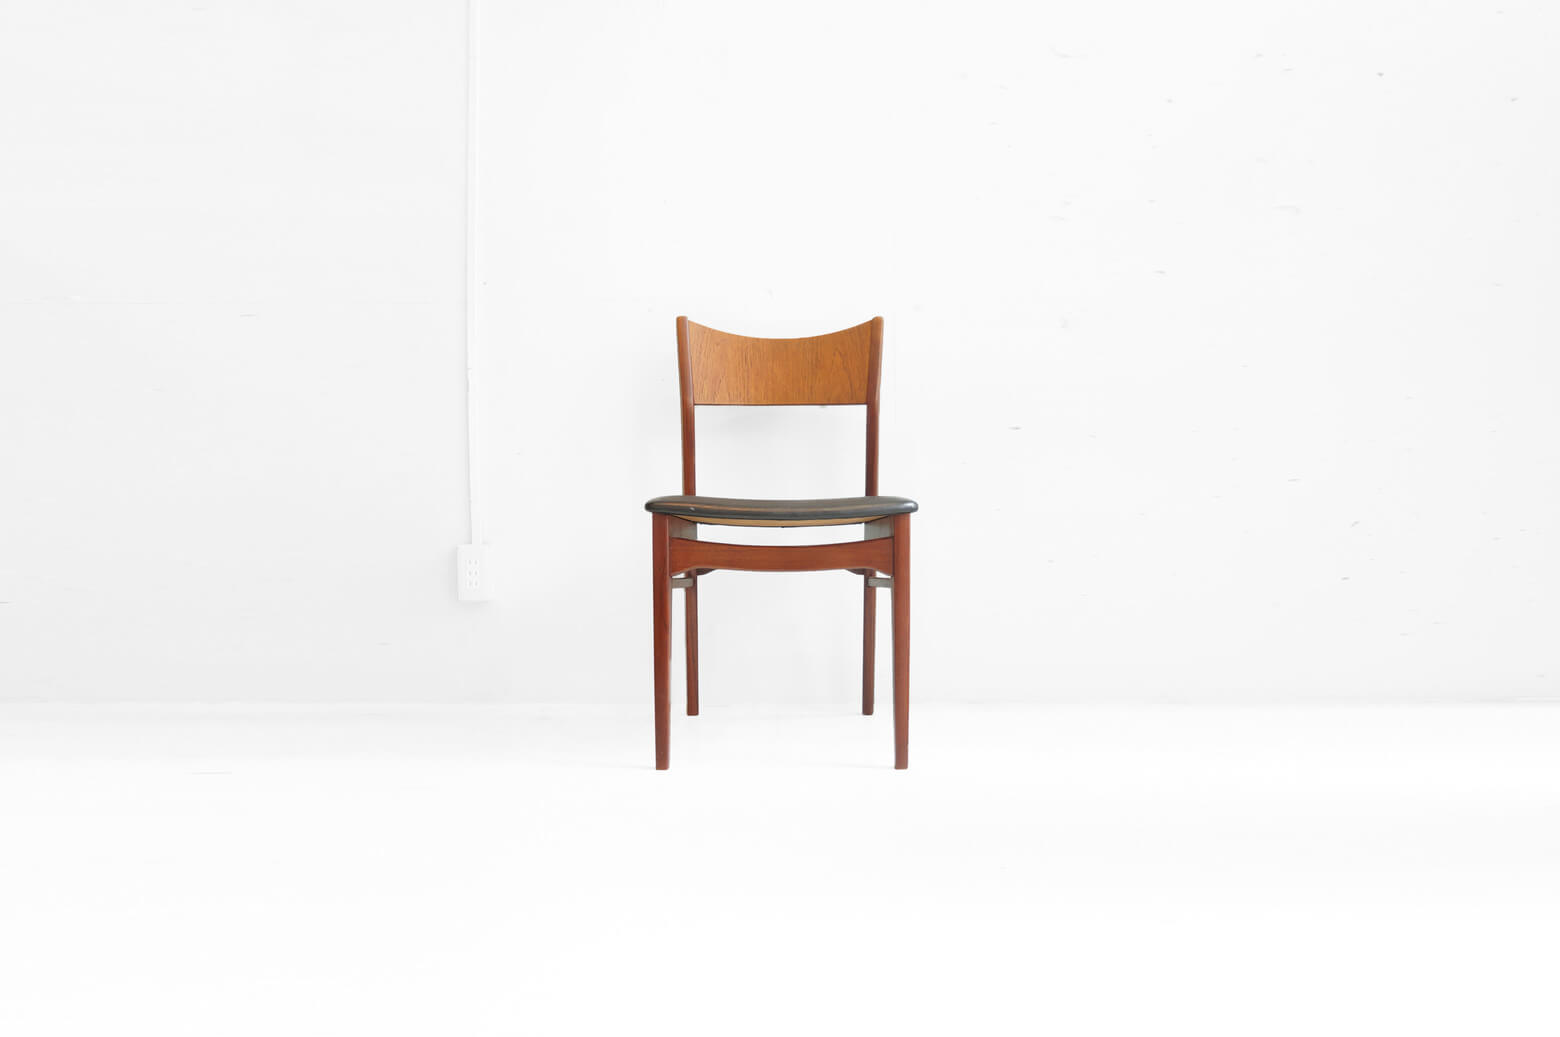 Danish Vintage Dining Chair/デンマークヴィンテージダイニングチェア